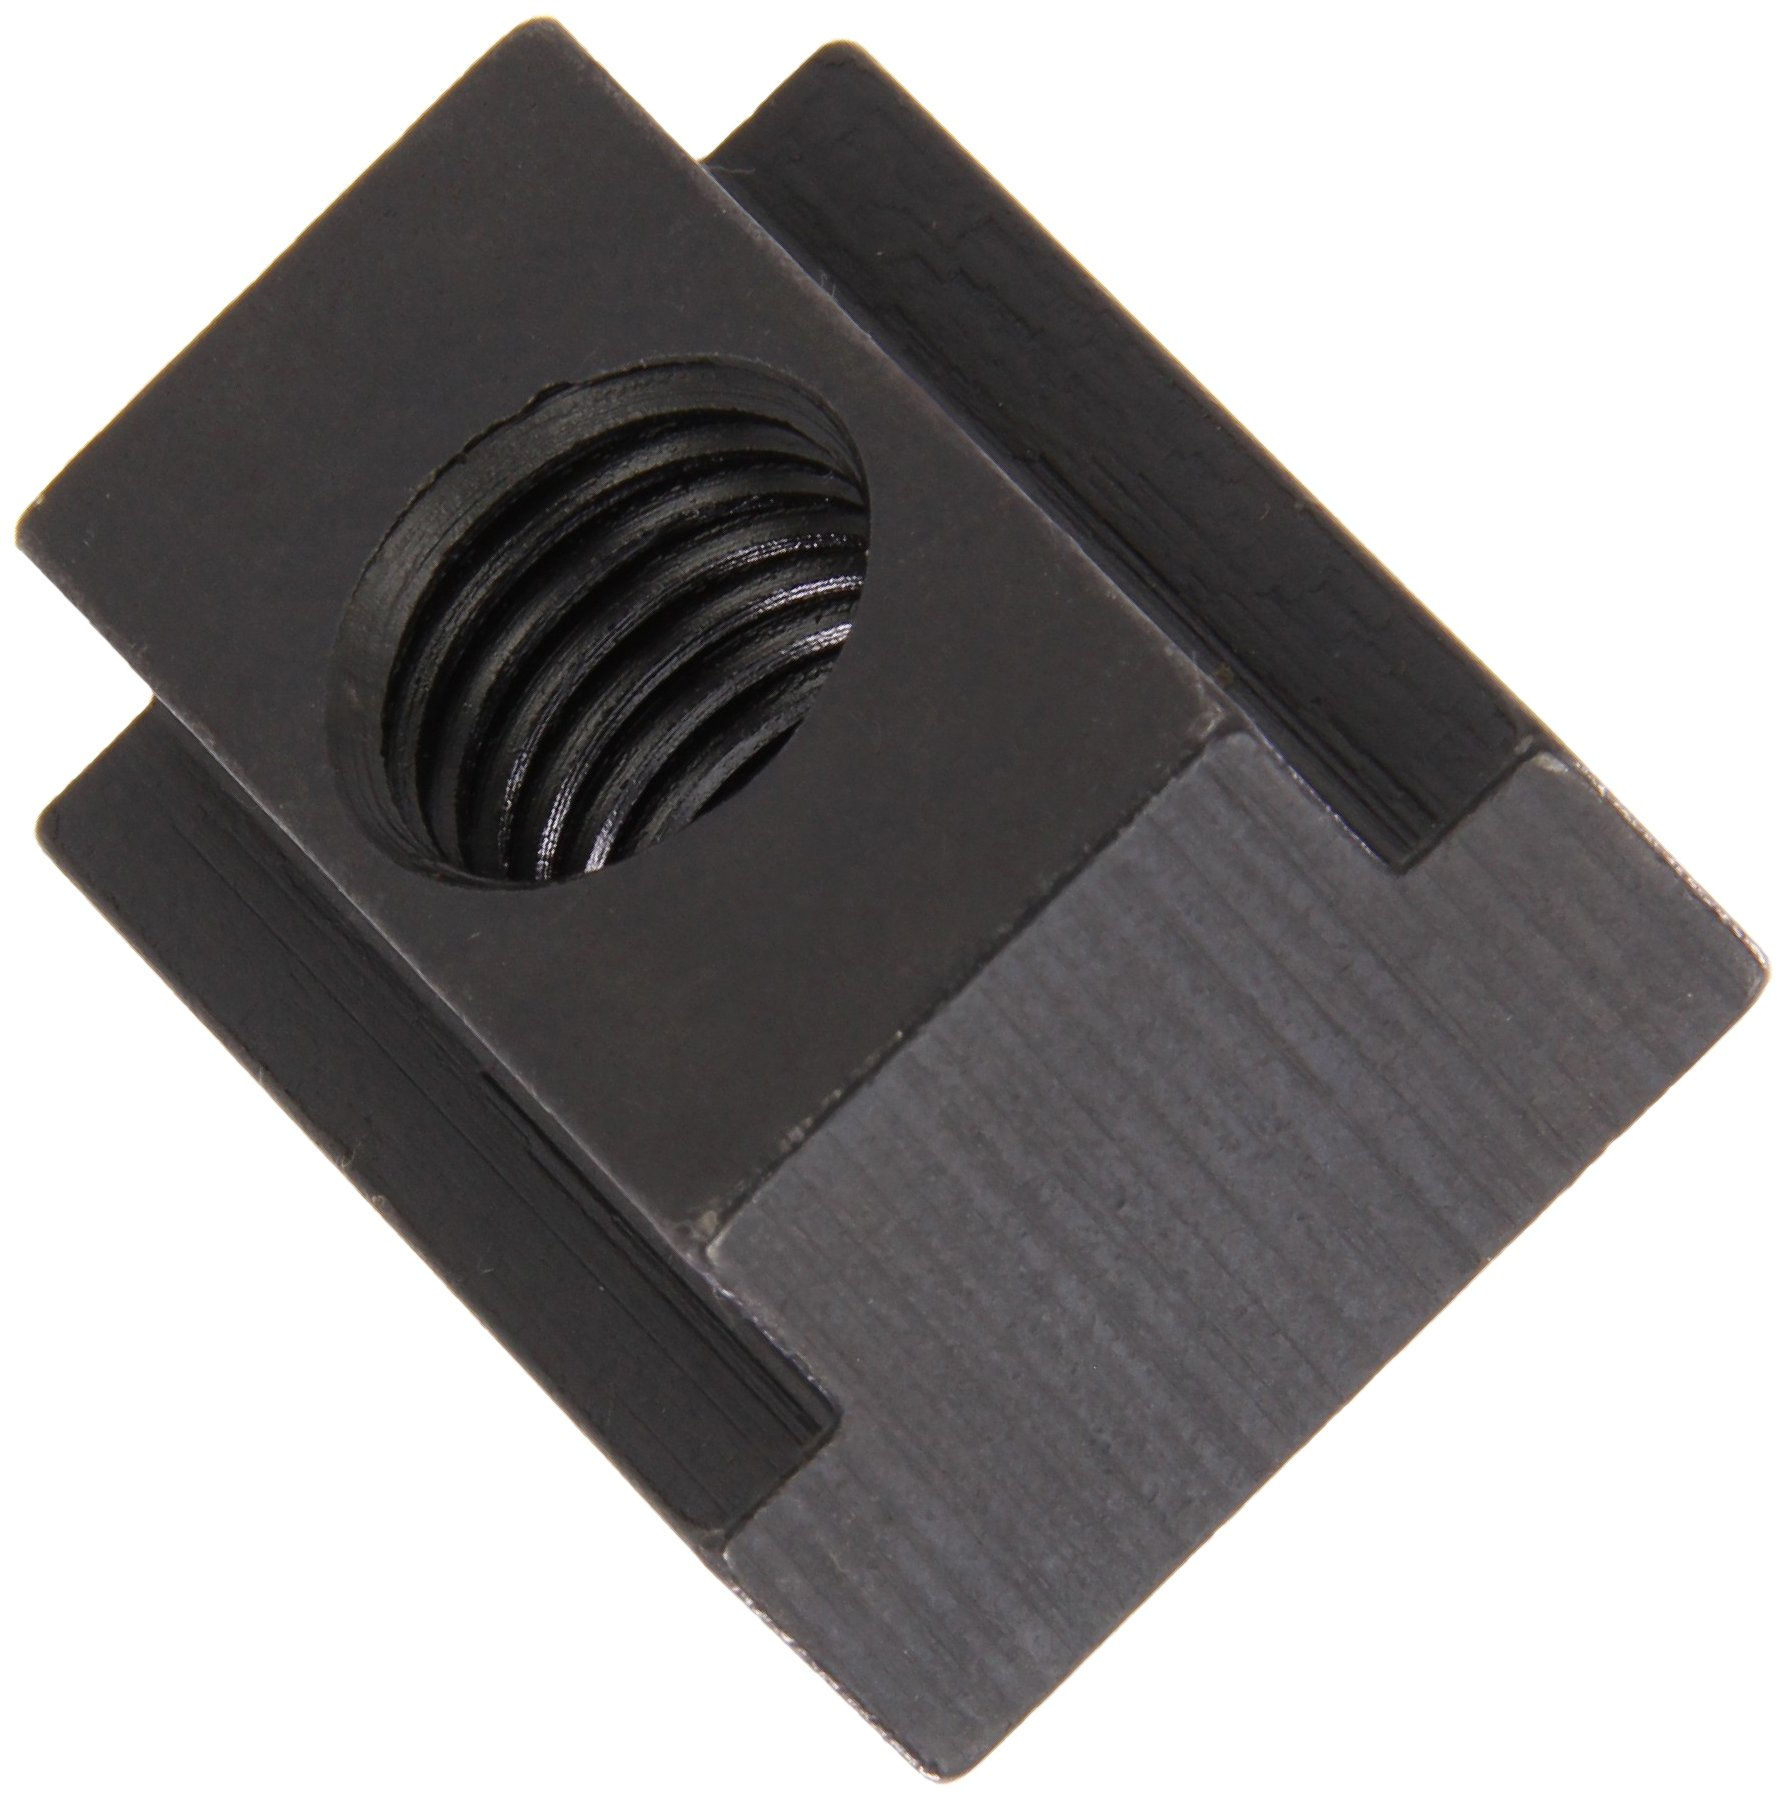 1018 Steel T-Slot Nut, Black Oxide Finish, 3/8''-16 Threads, 5/8'' Height, 9/16'' Slot Depth, Made in US (Pack of 5)